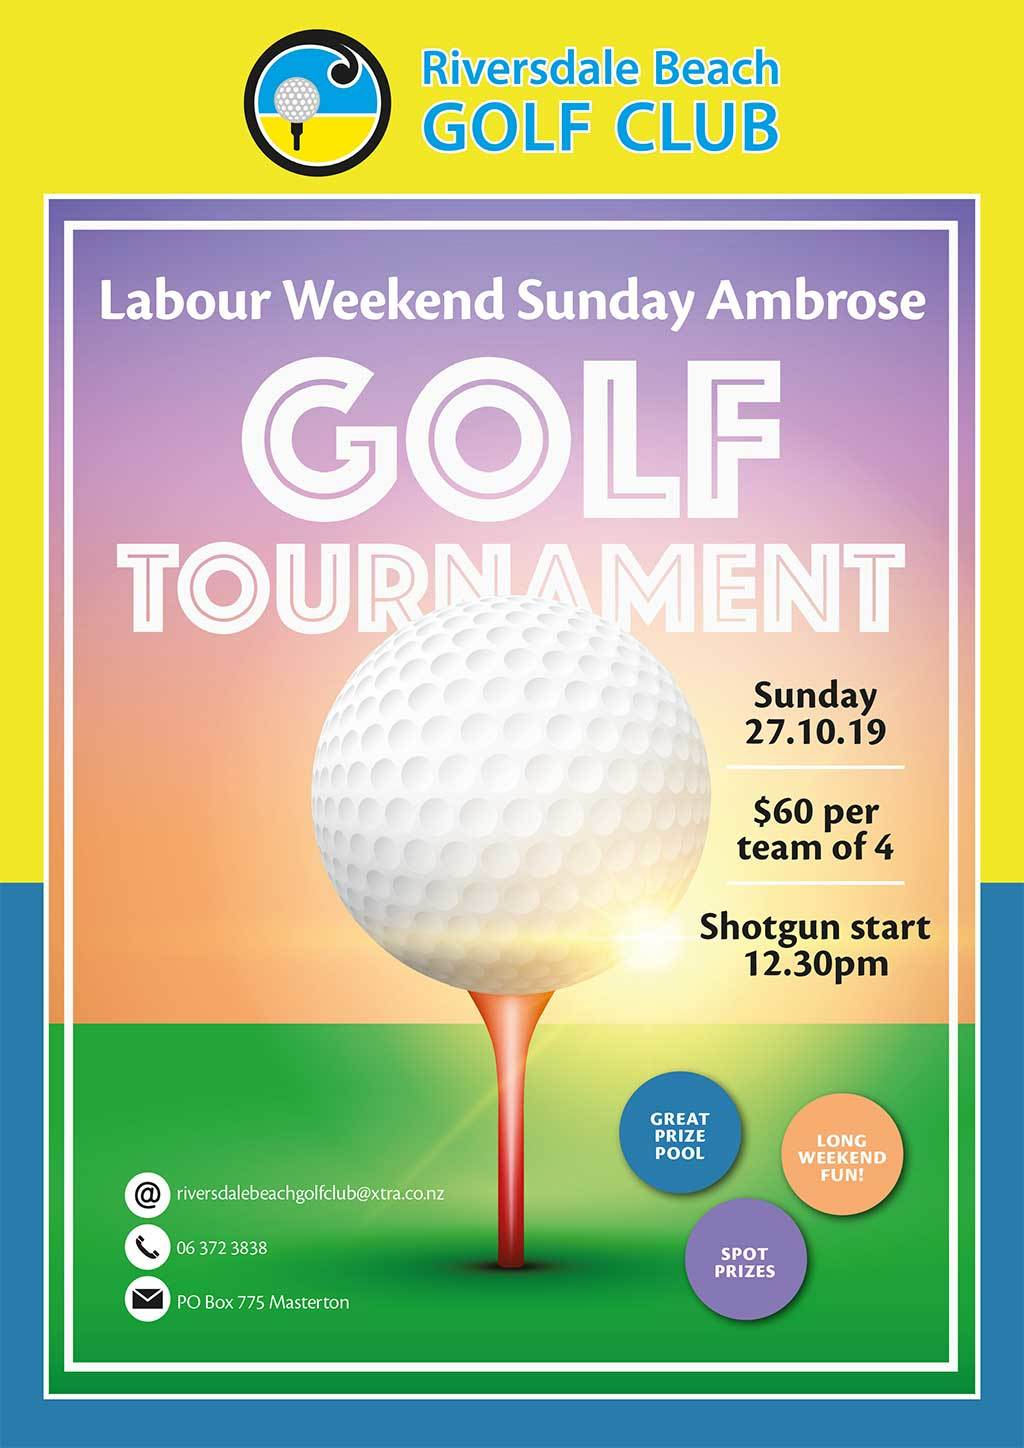 Labour Weekend Ambrose Tournament